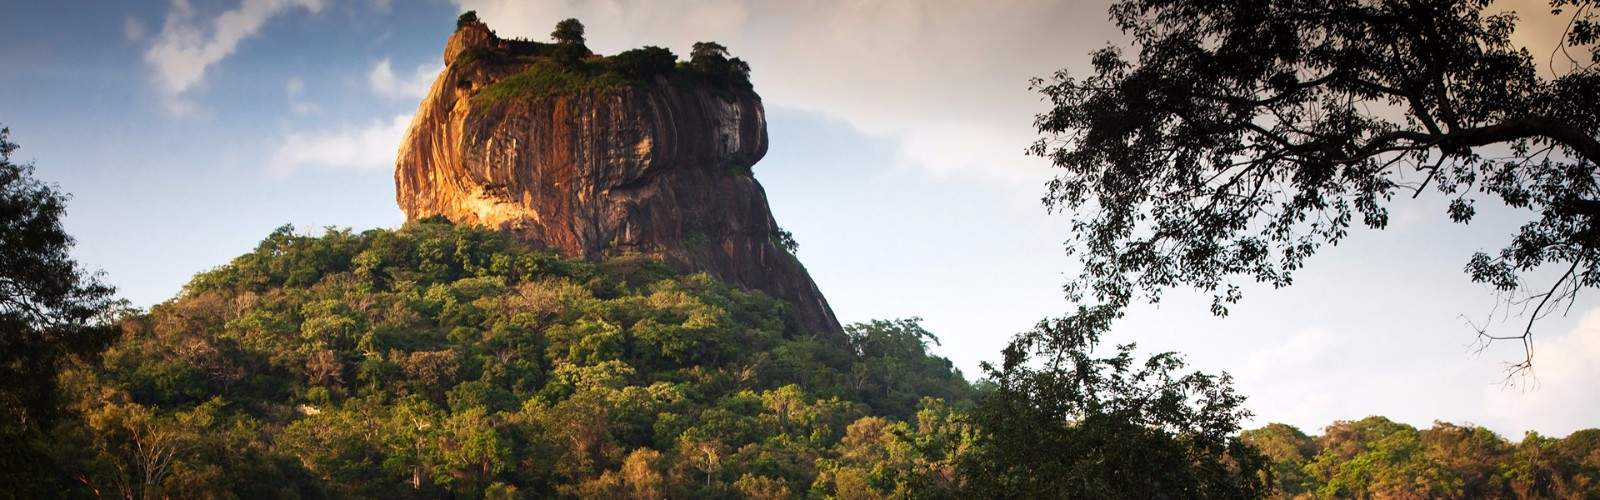 Sigiriya: Lion Rock Fortress Holidays